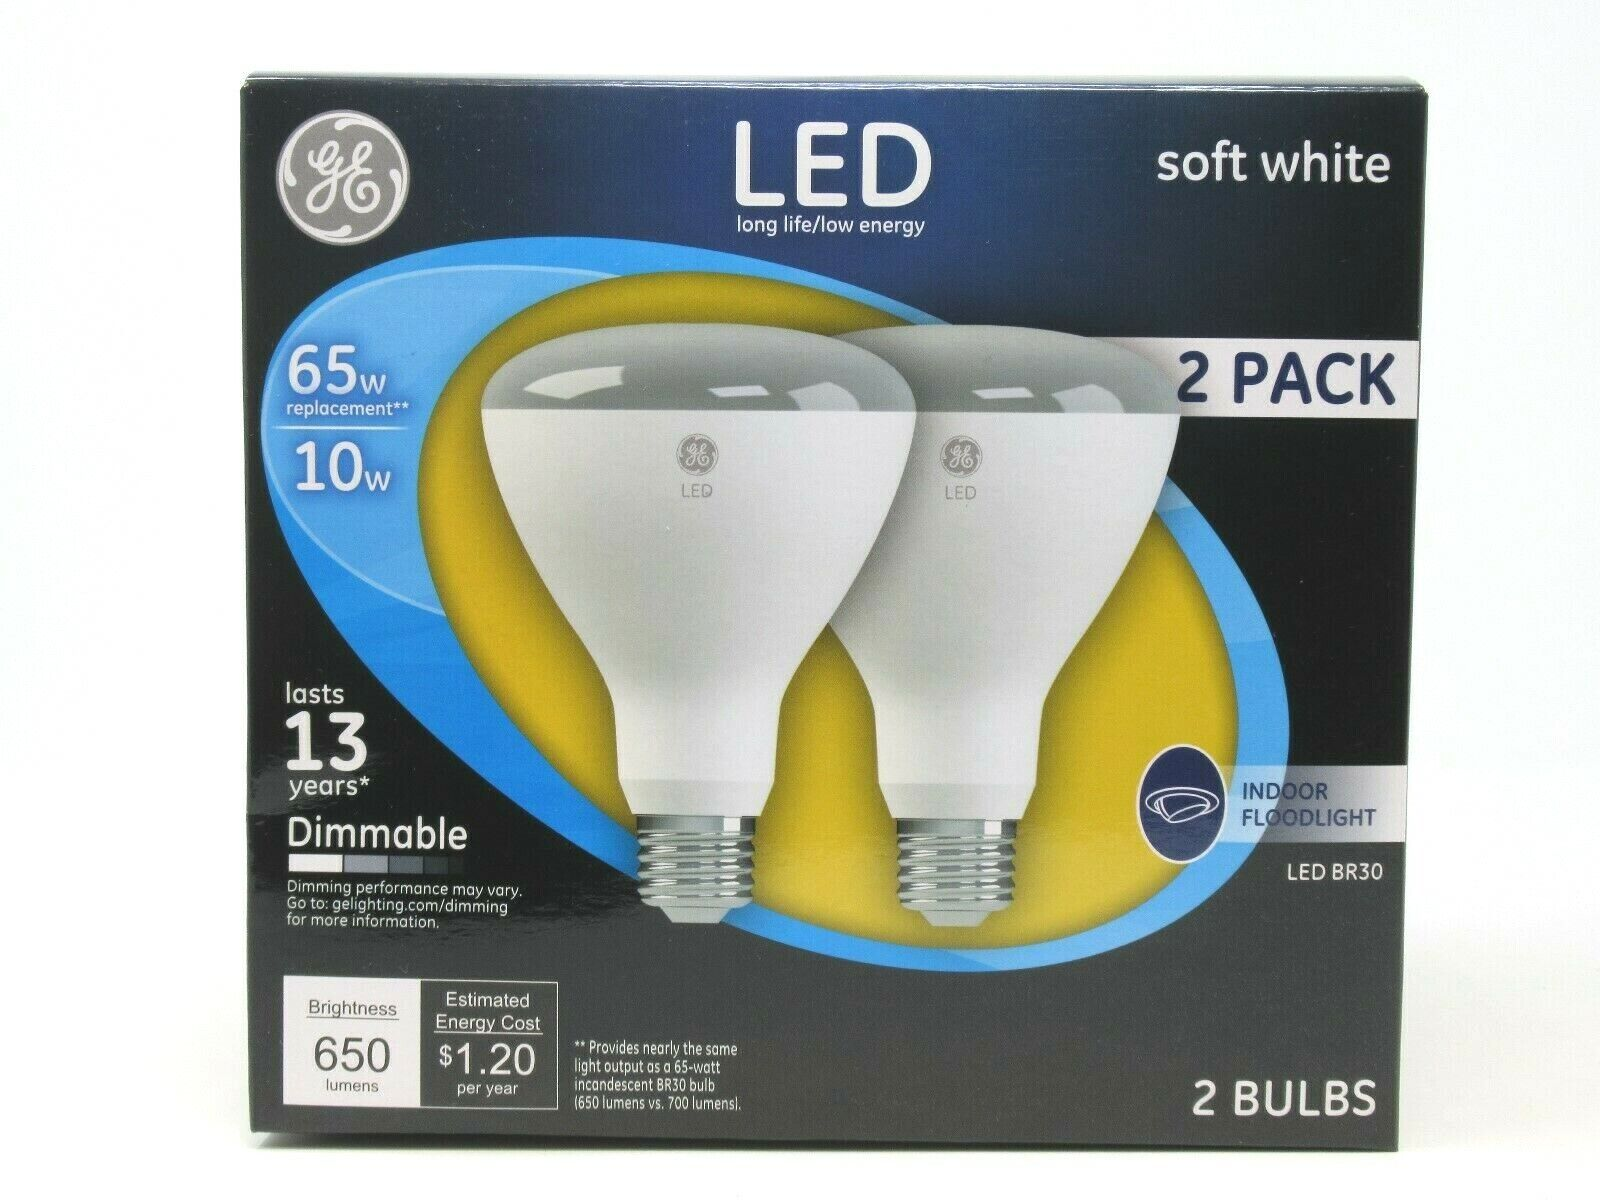 GE Soft White LED Floodlight Bulbs 65W Uses 10W Dimmable Ind